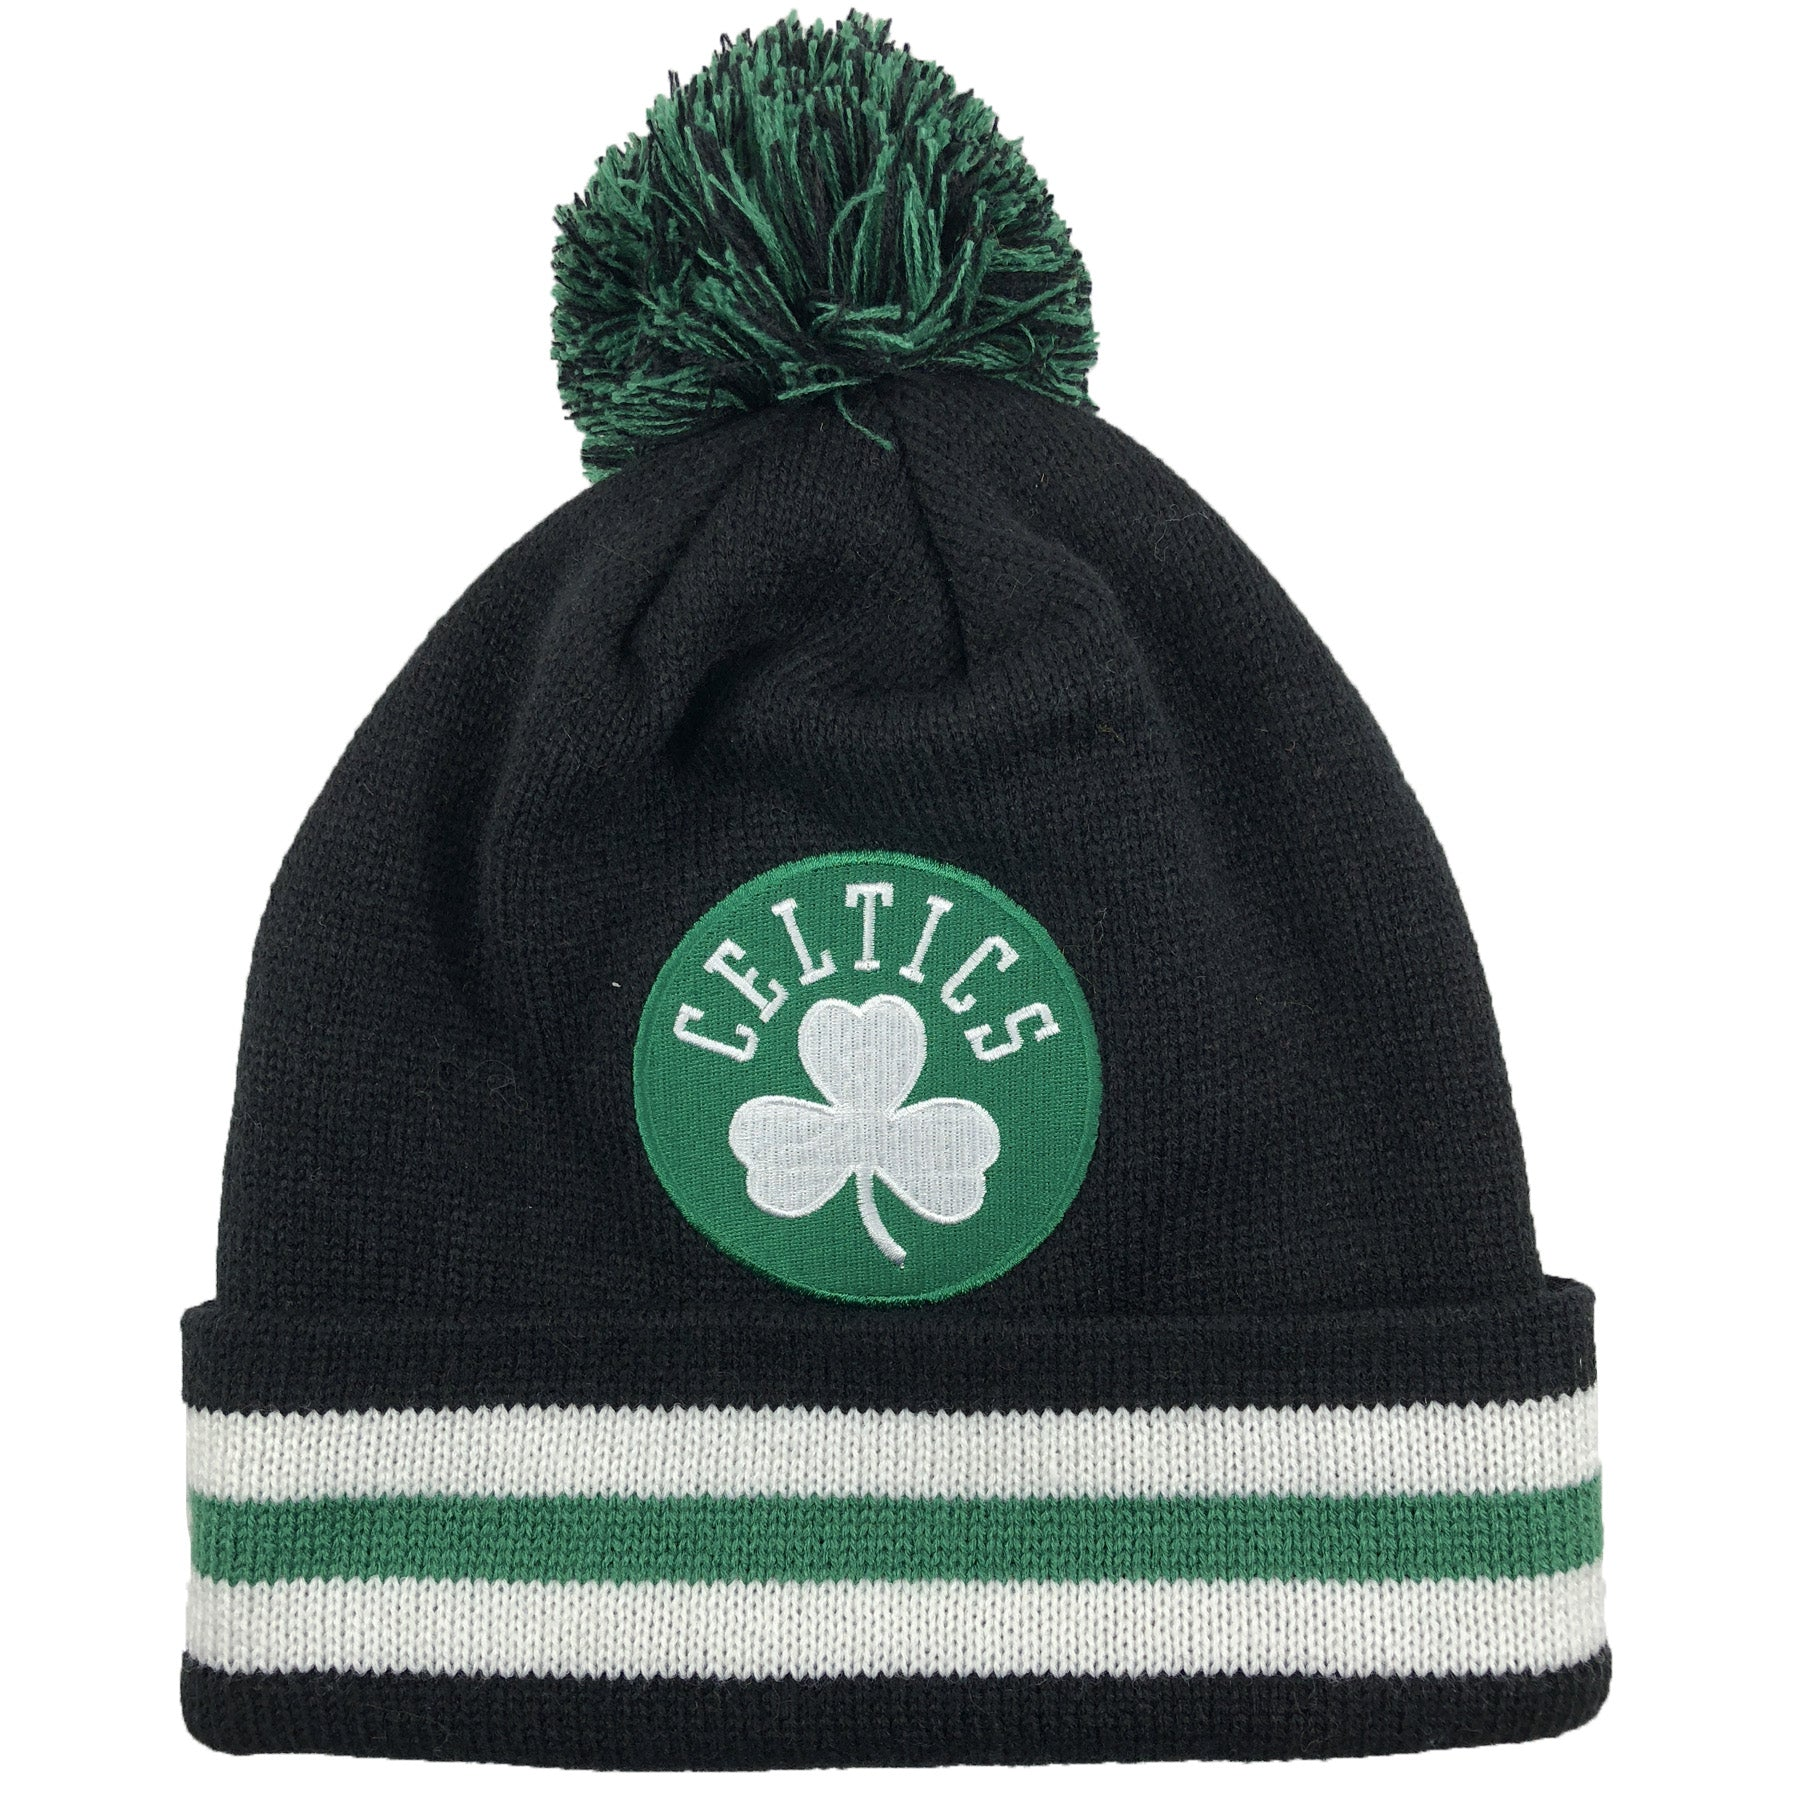 4dbfa946 Boston Celtics Black Striped Cuff Knit Pom Beanie